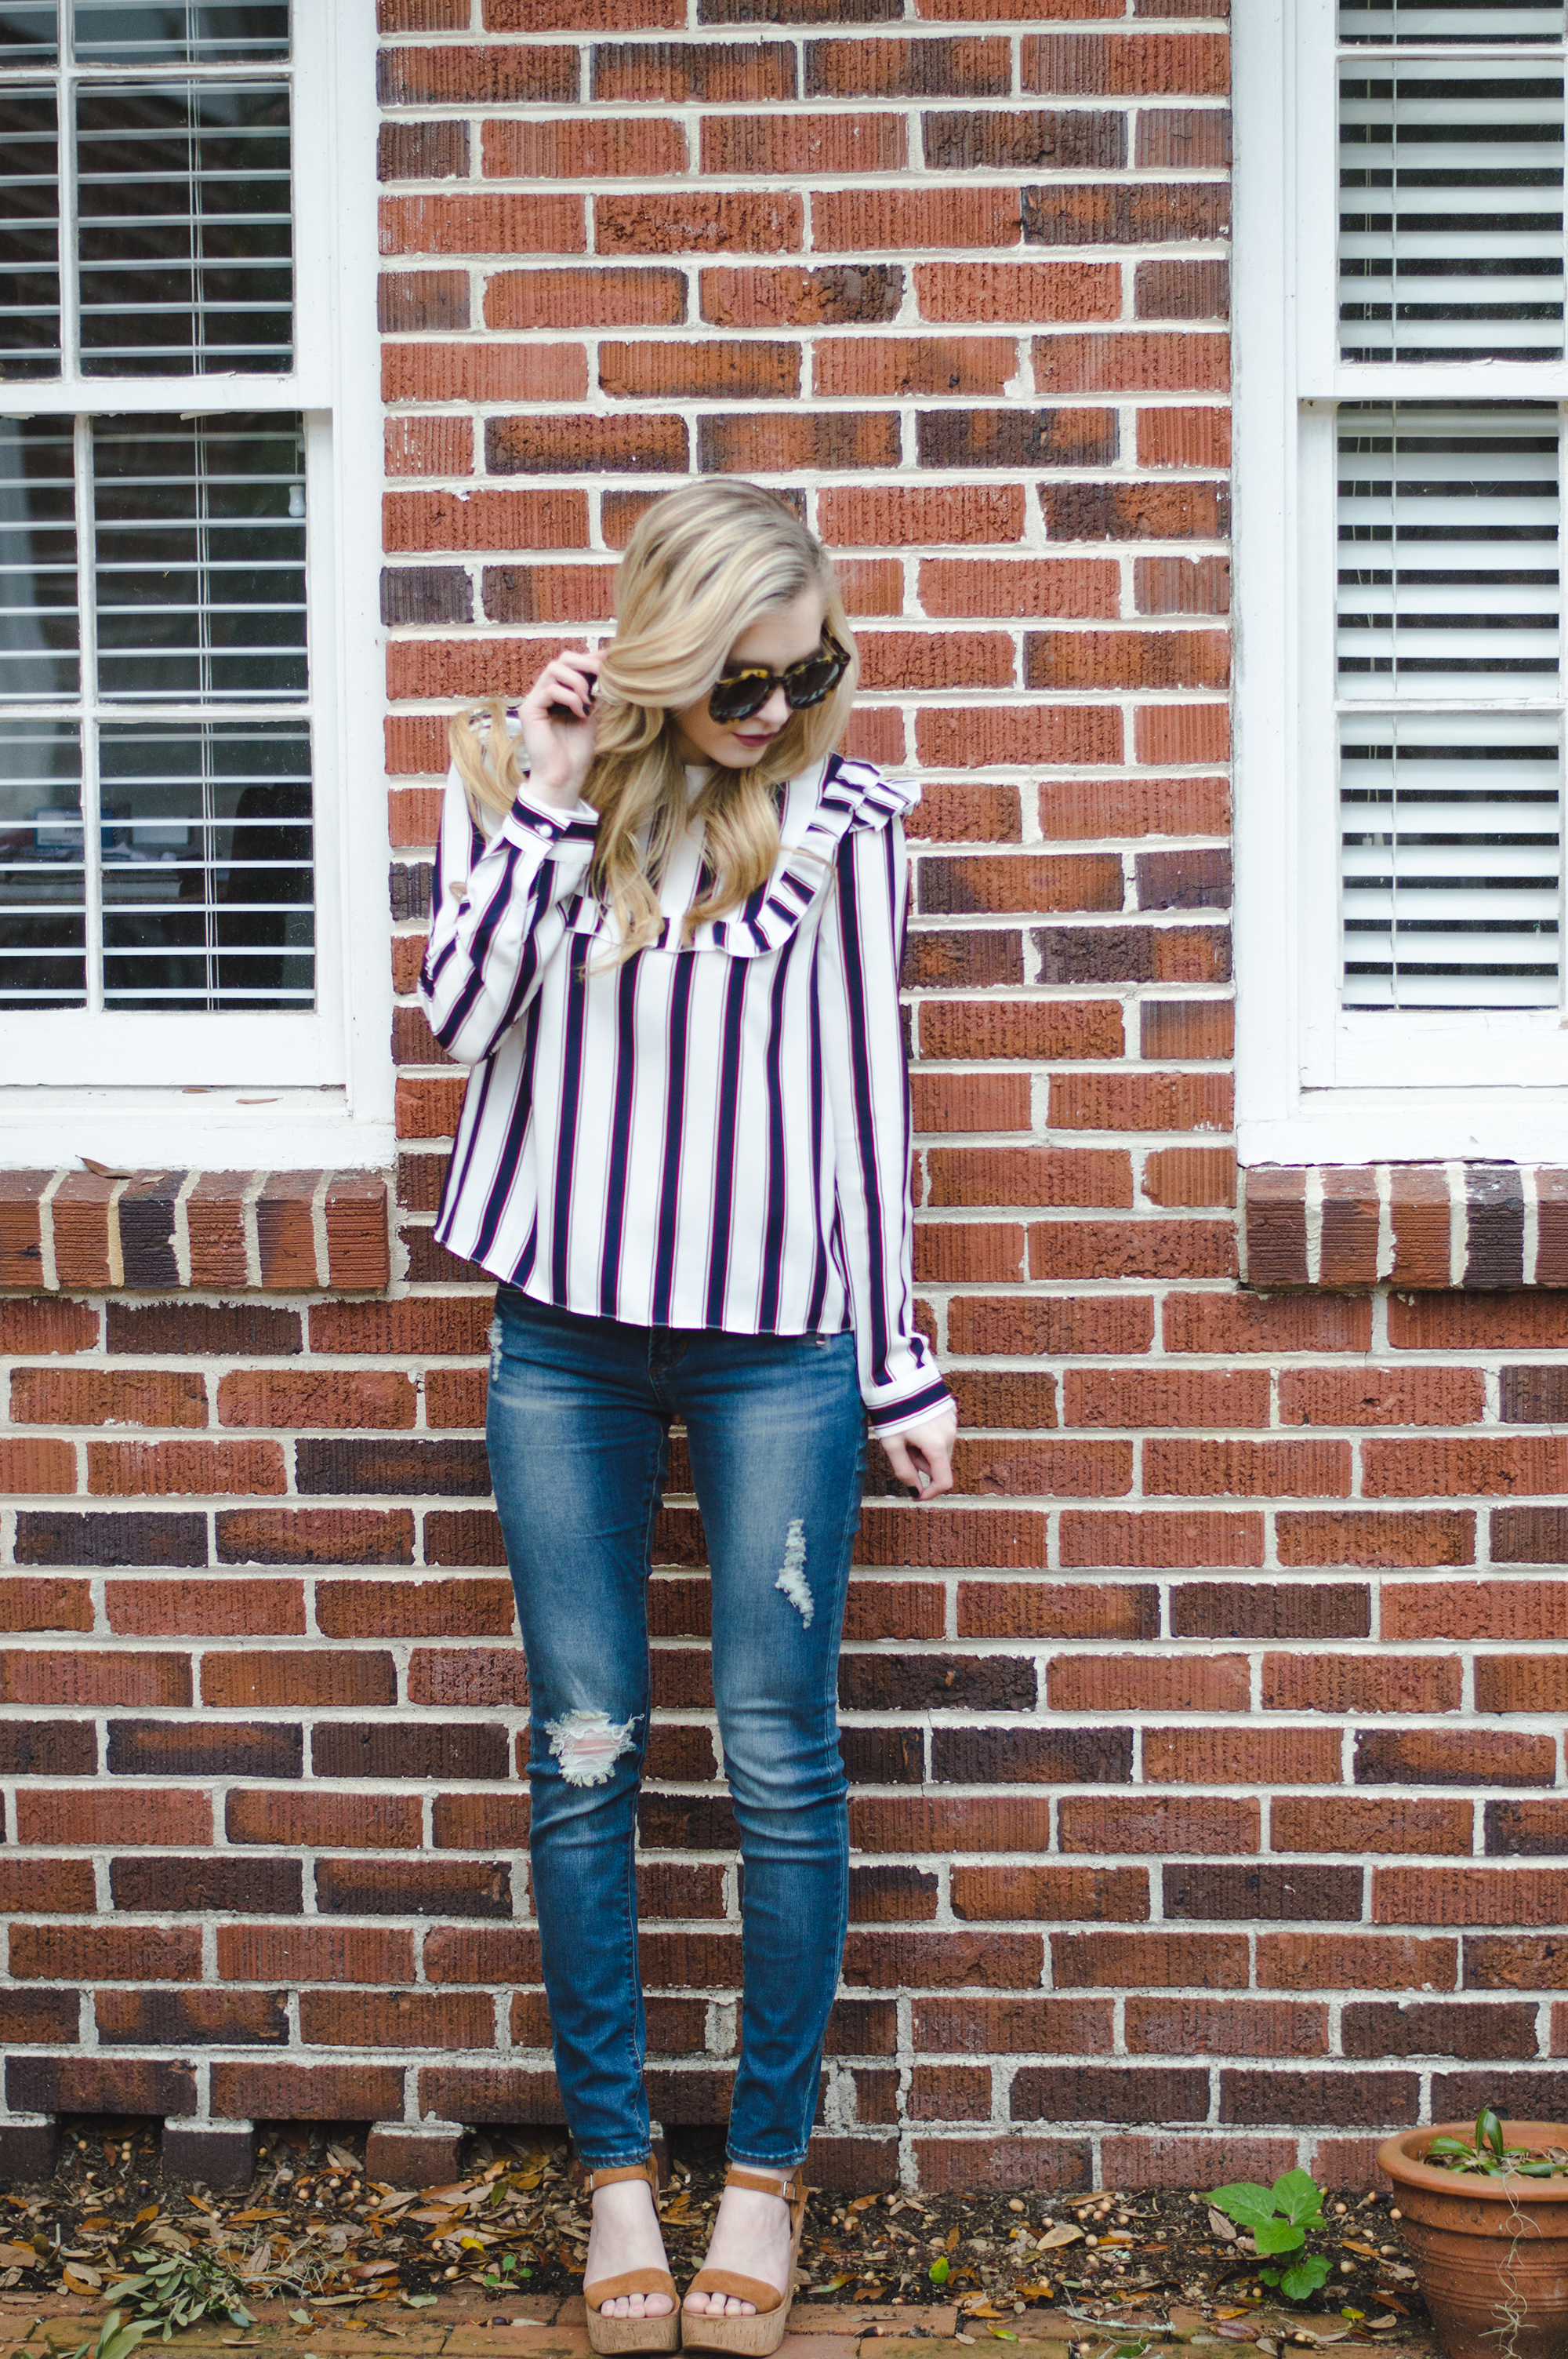 styelled-blog-elle-elisabeth-fashion-style-blogger-fblogger-like-to-know-it-articles-of-society-english-factory-karen-walker-dolce-vita-shop-smac-stripes-01